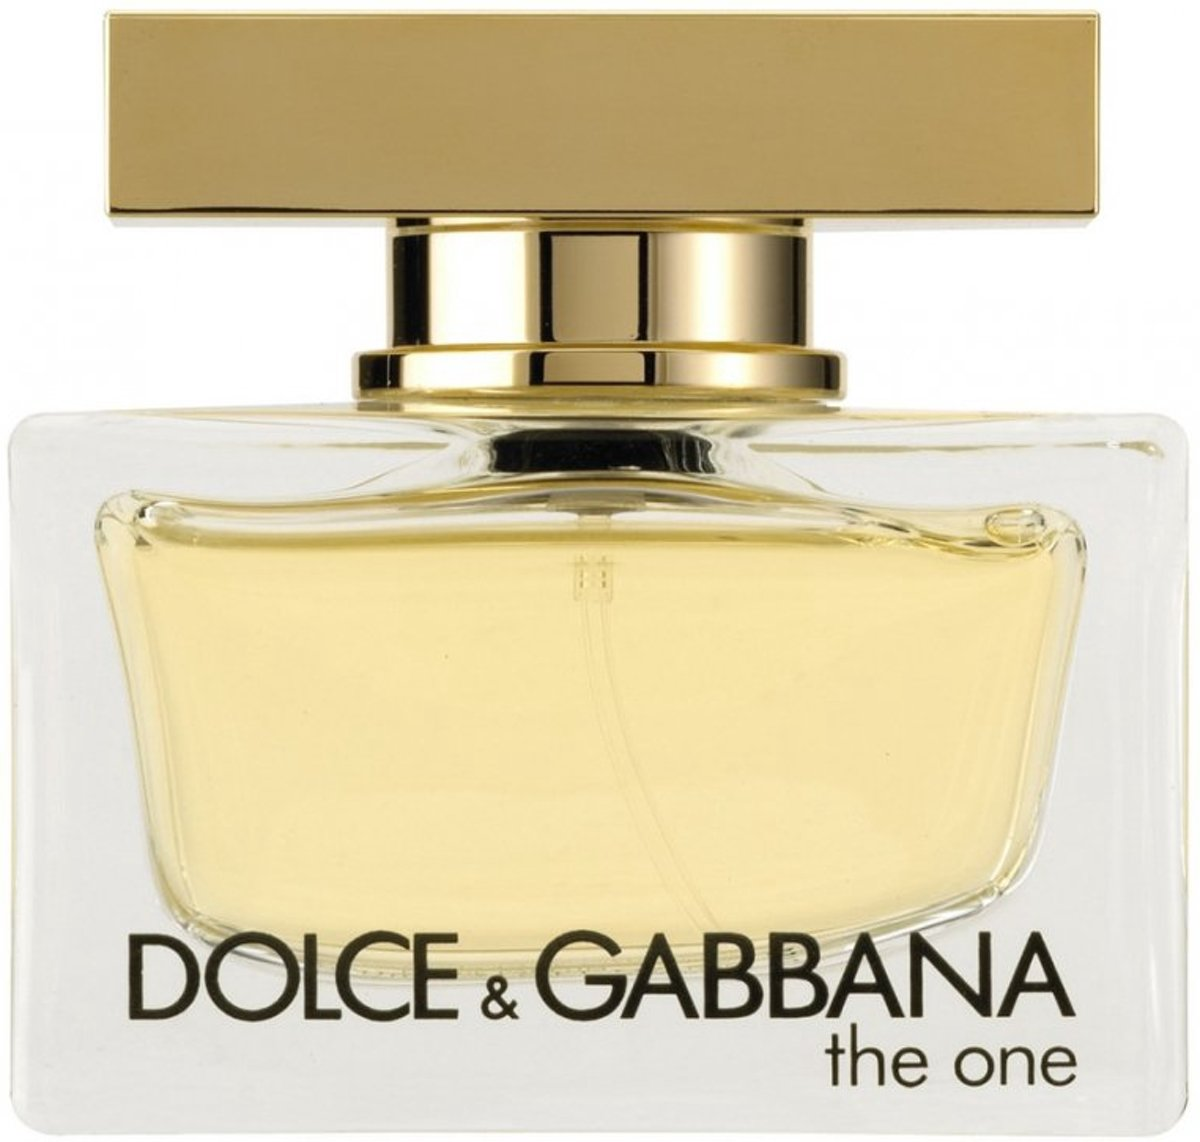 Dolce & Gabbana The One - 100 ml - Eau De Toilette - For Women